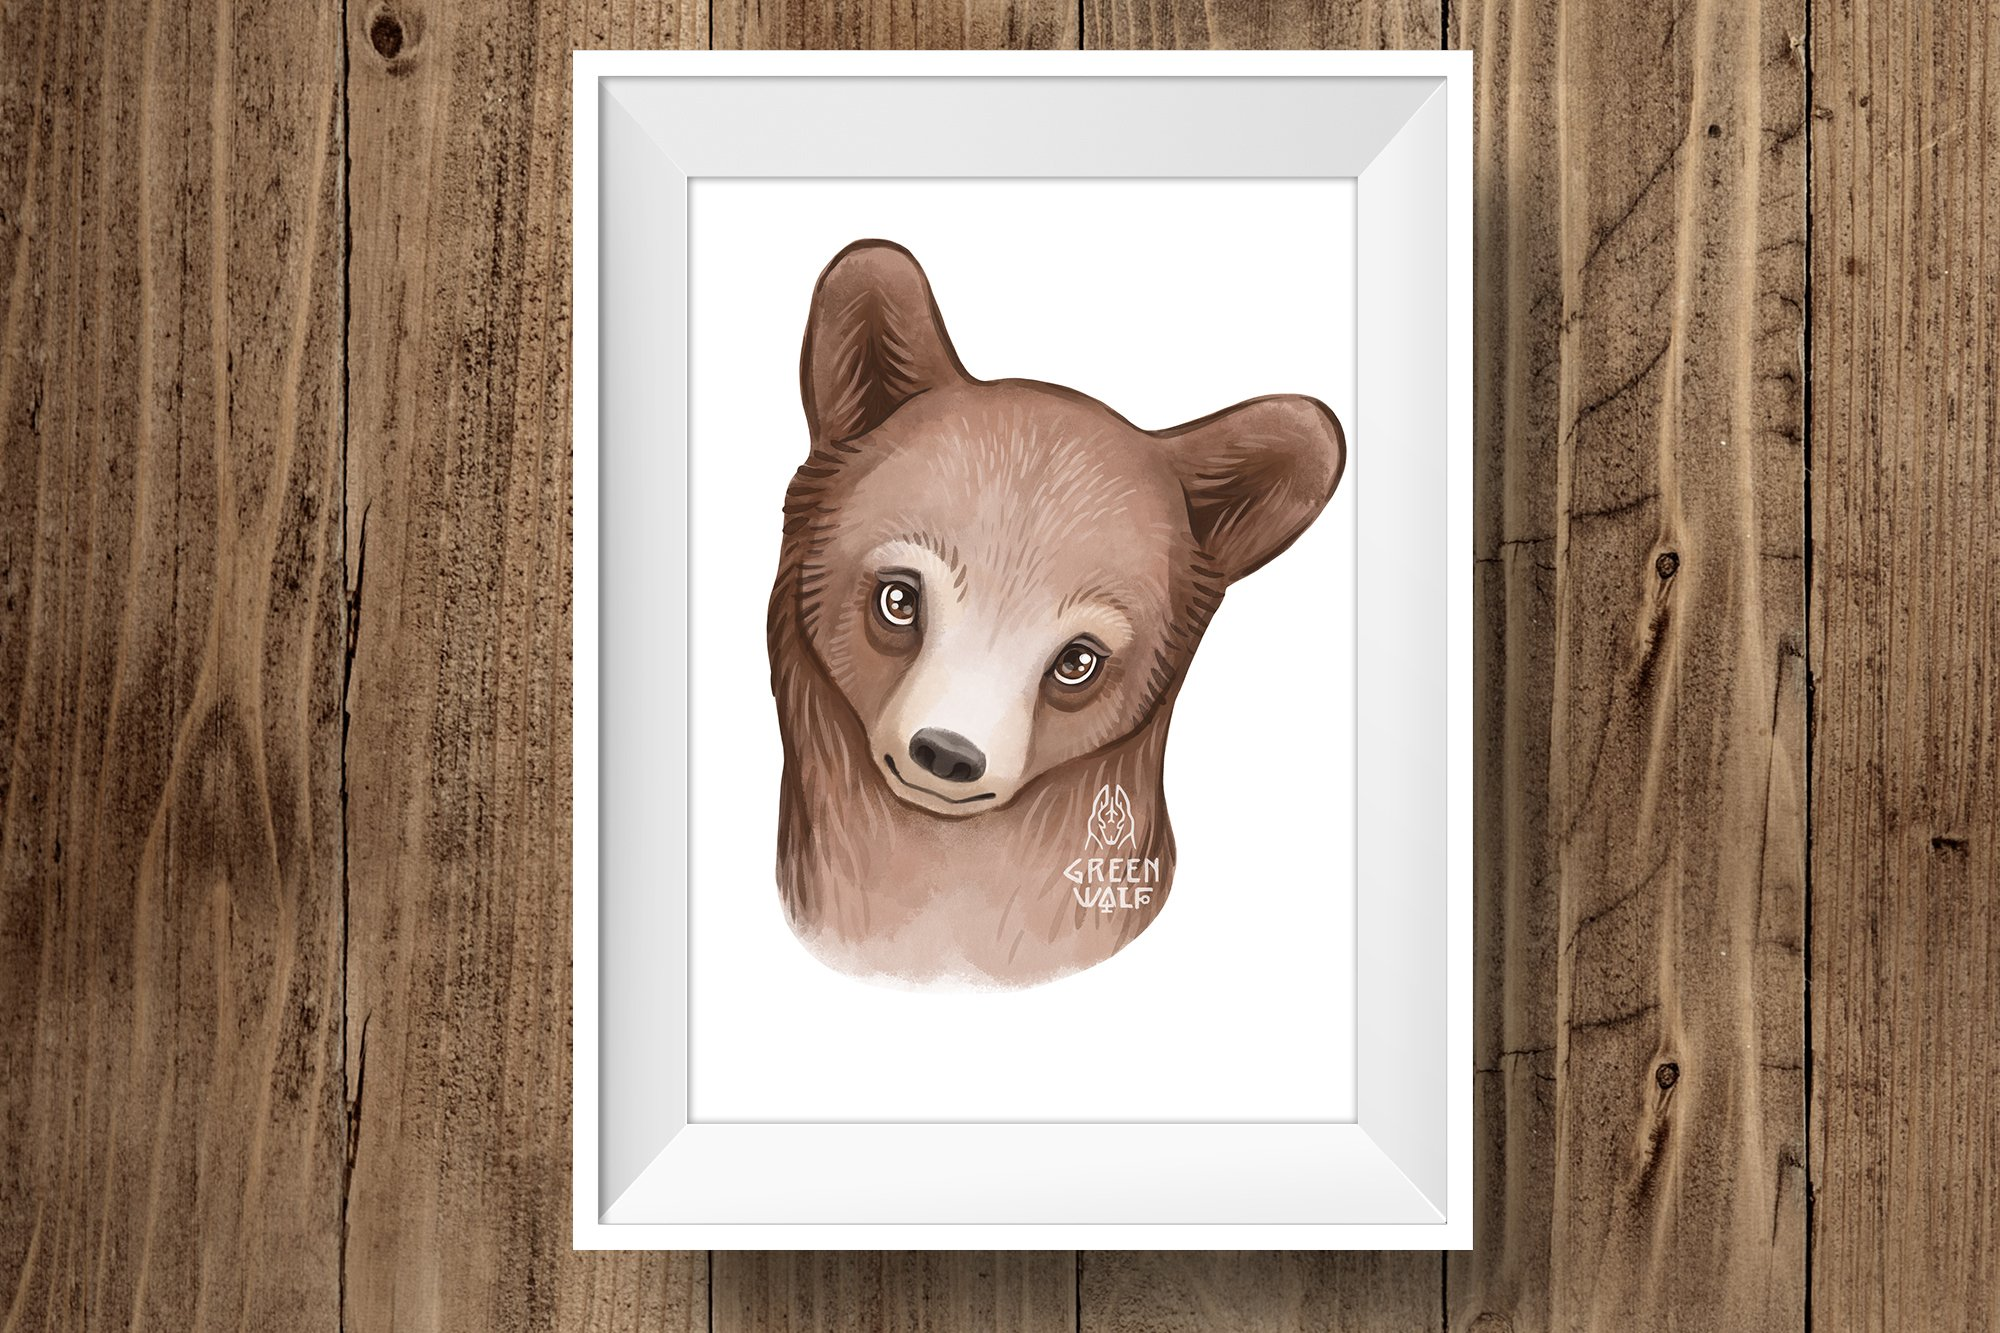 Grizzly bear watercolor illustration Woodland nursery decor example image 5